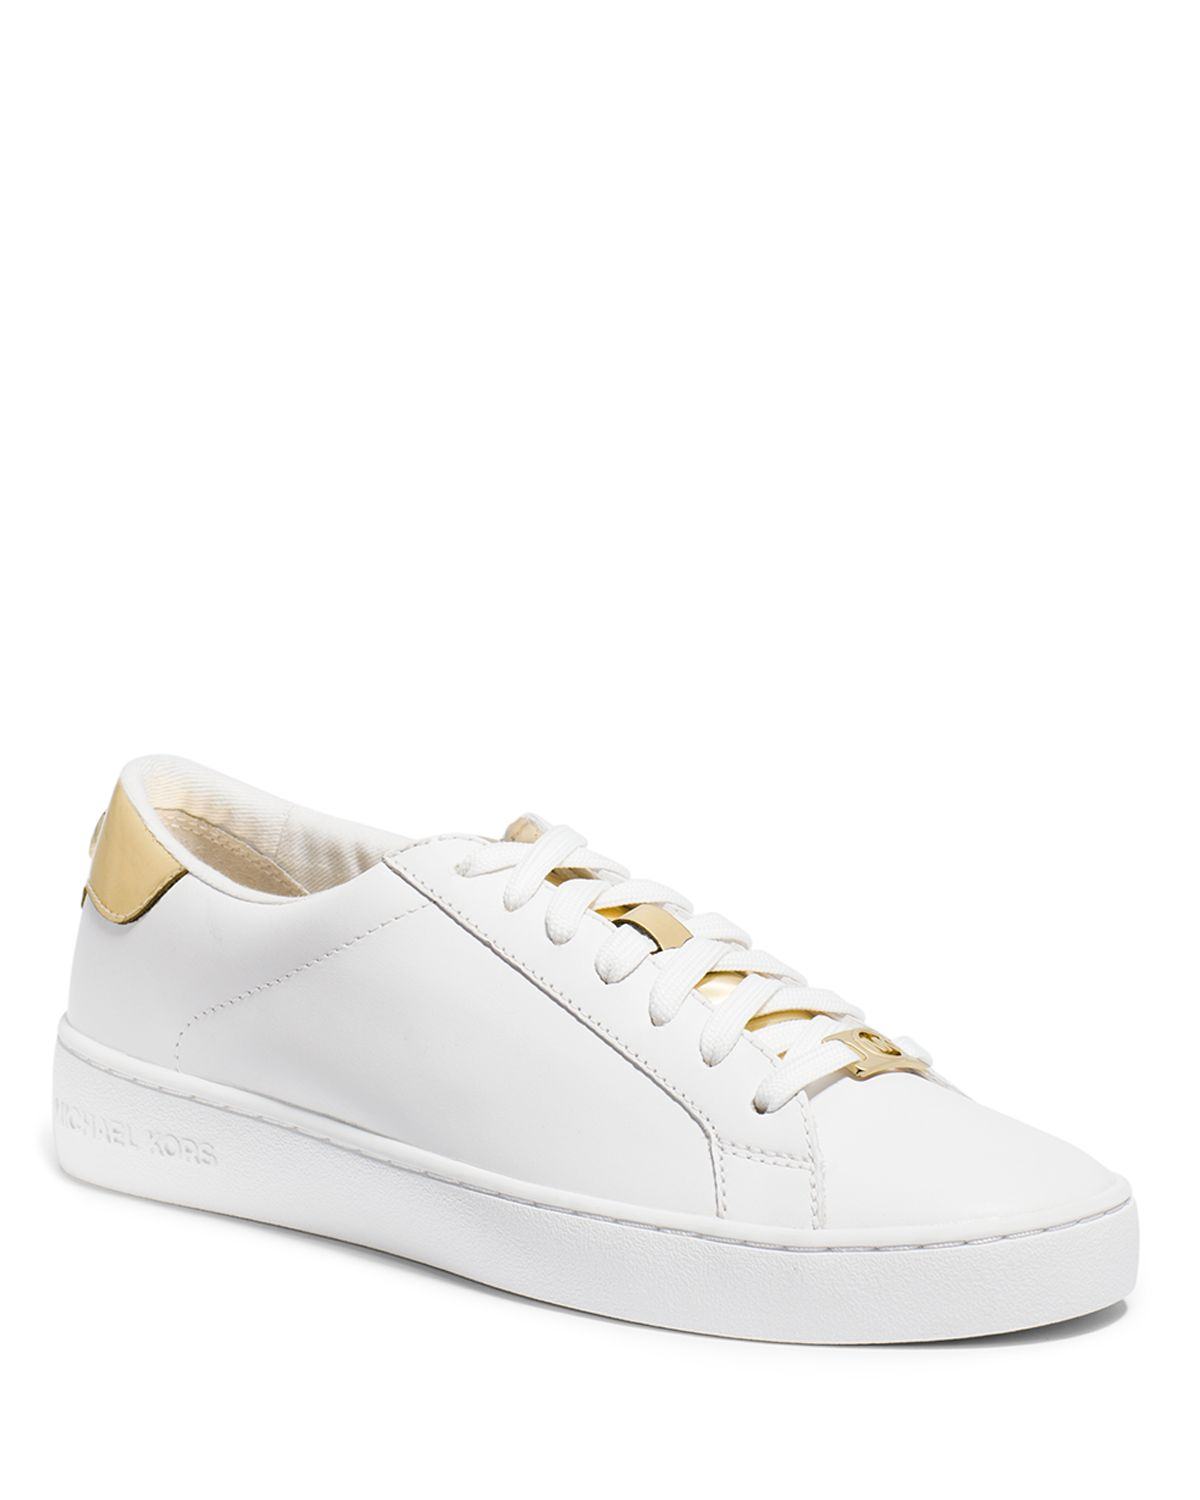 lace-up sneakers - White Michael Michael Kors